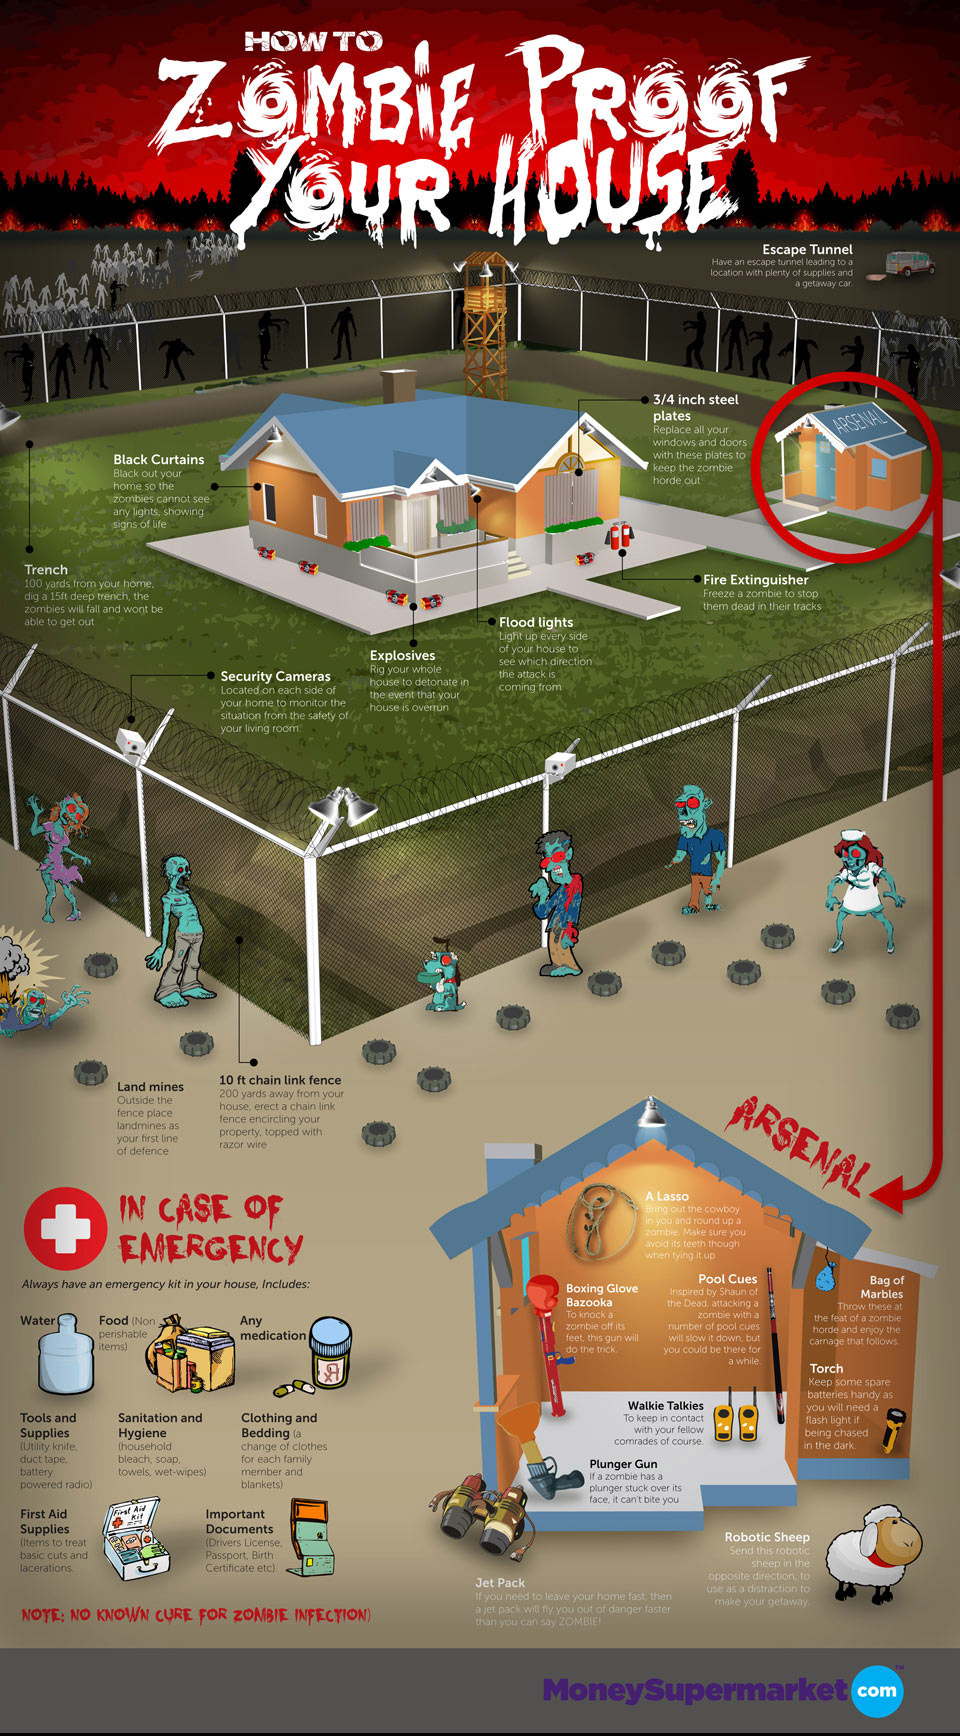 How to Zombie Proof Your House